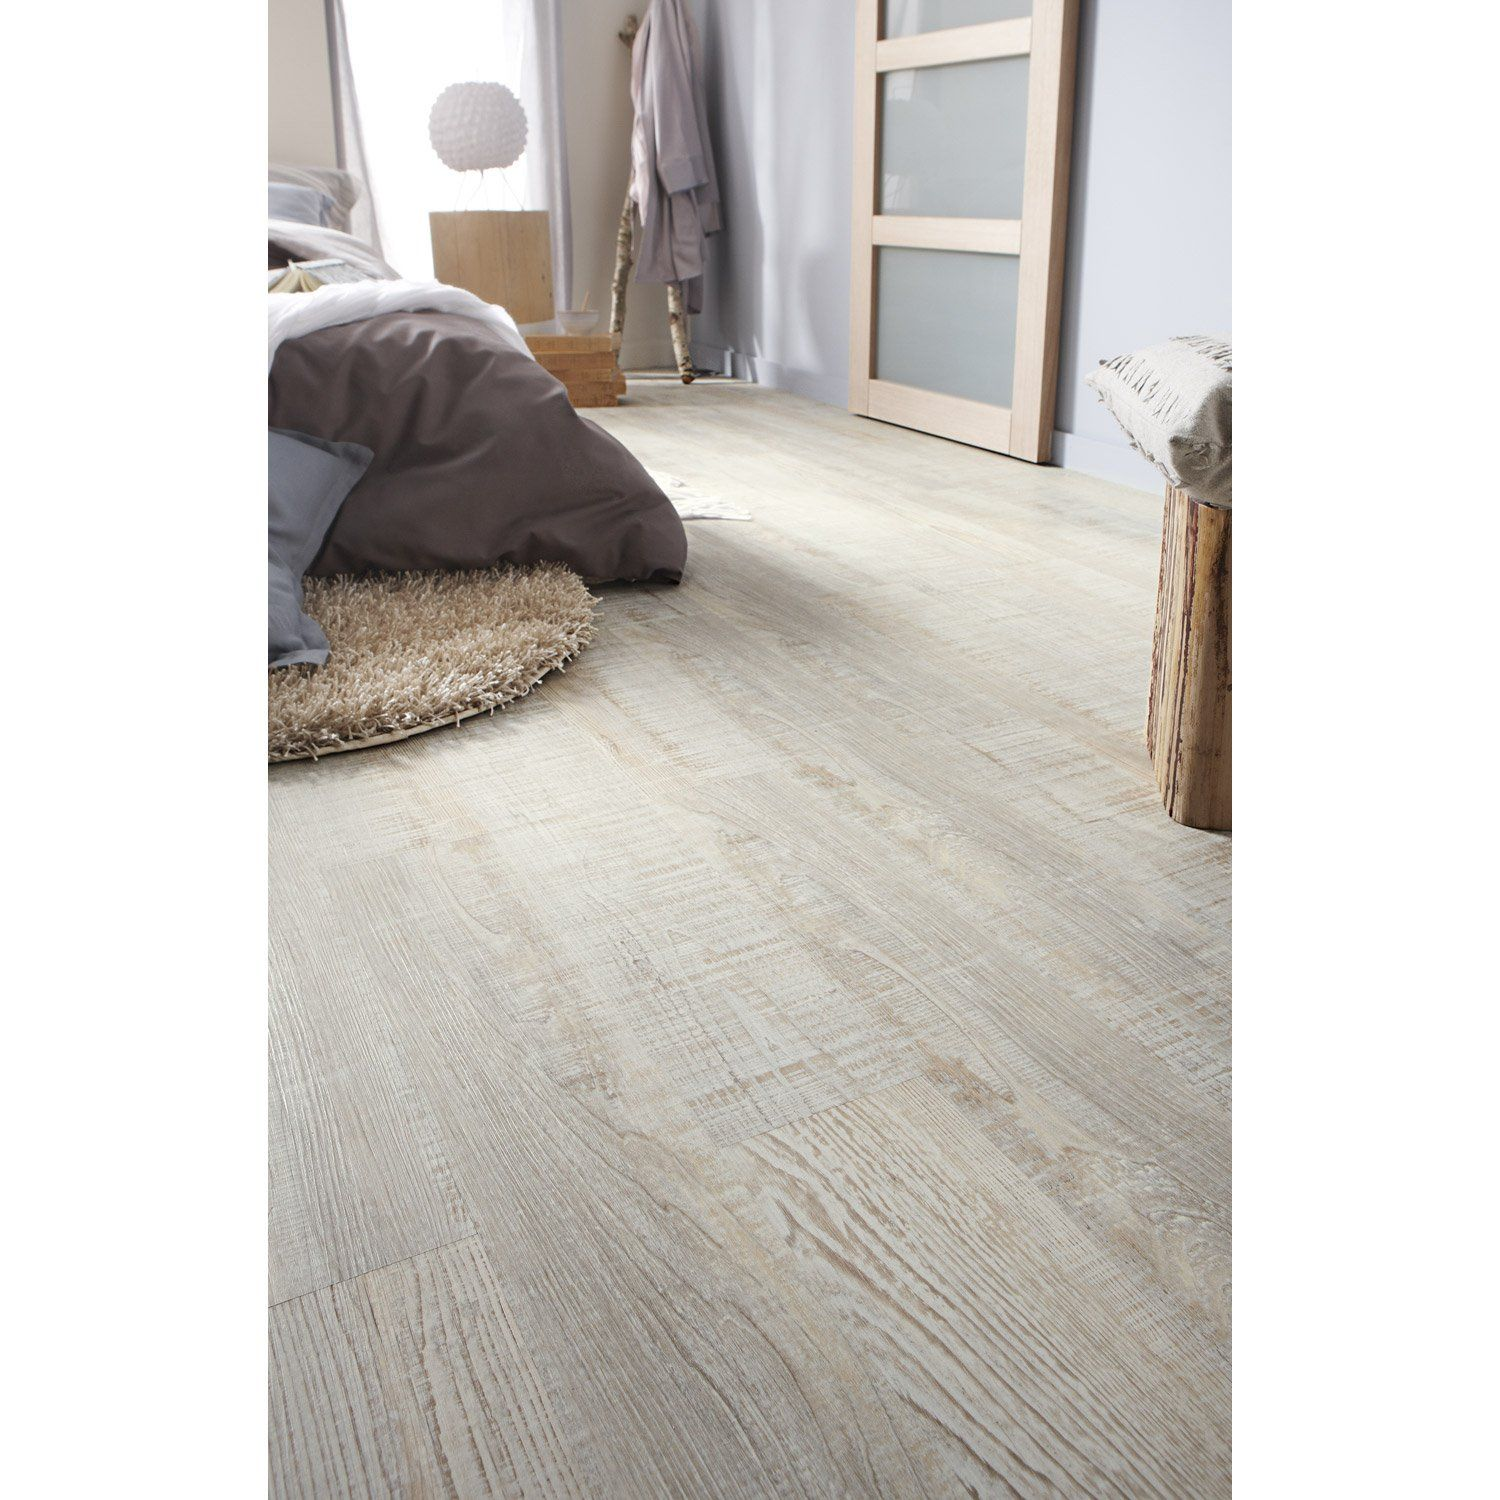 Lame Pvc Clipsable Marron Candelnut Senso Lock Gerflor Sol Pvc Parquet Pvc Meuble Chambre A Coucher